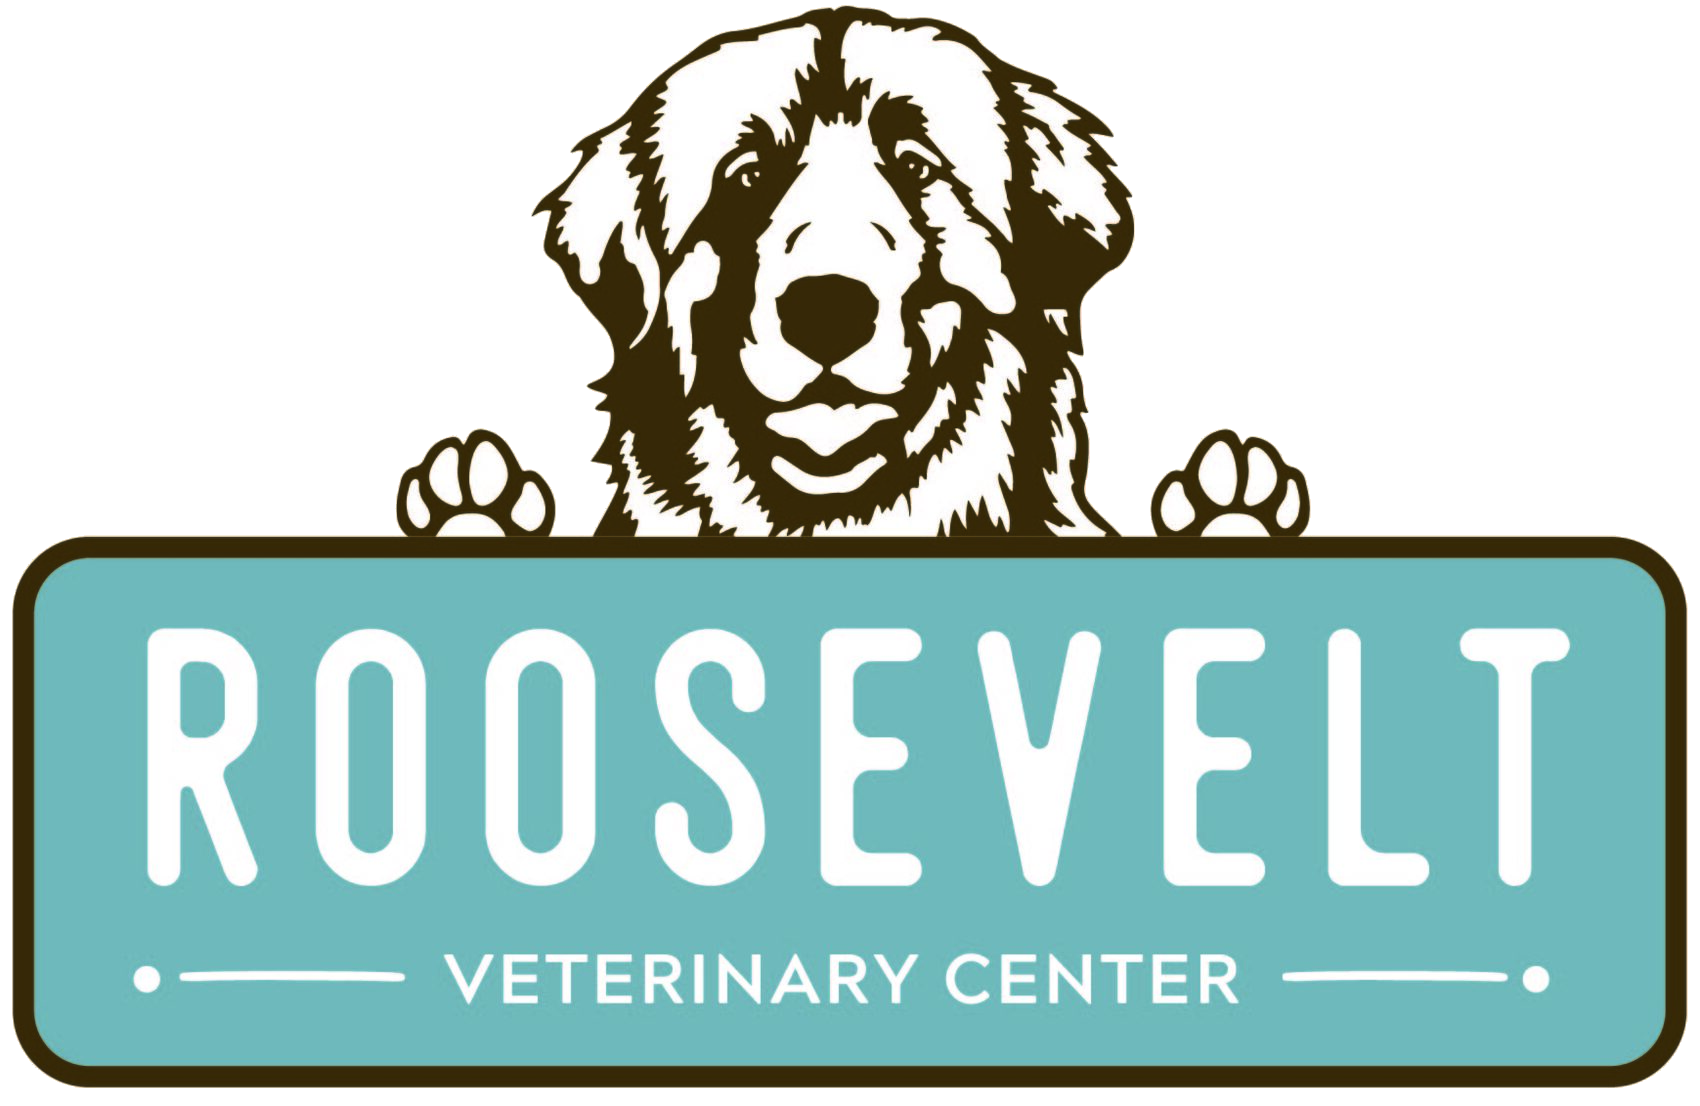 Roosevelt Veterinary Center logo